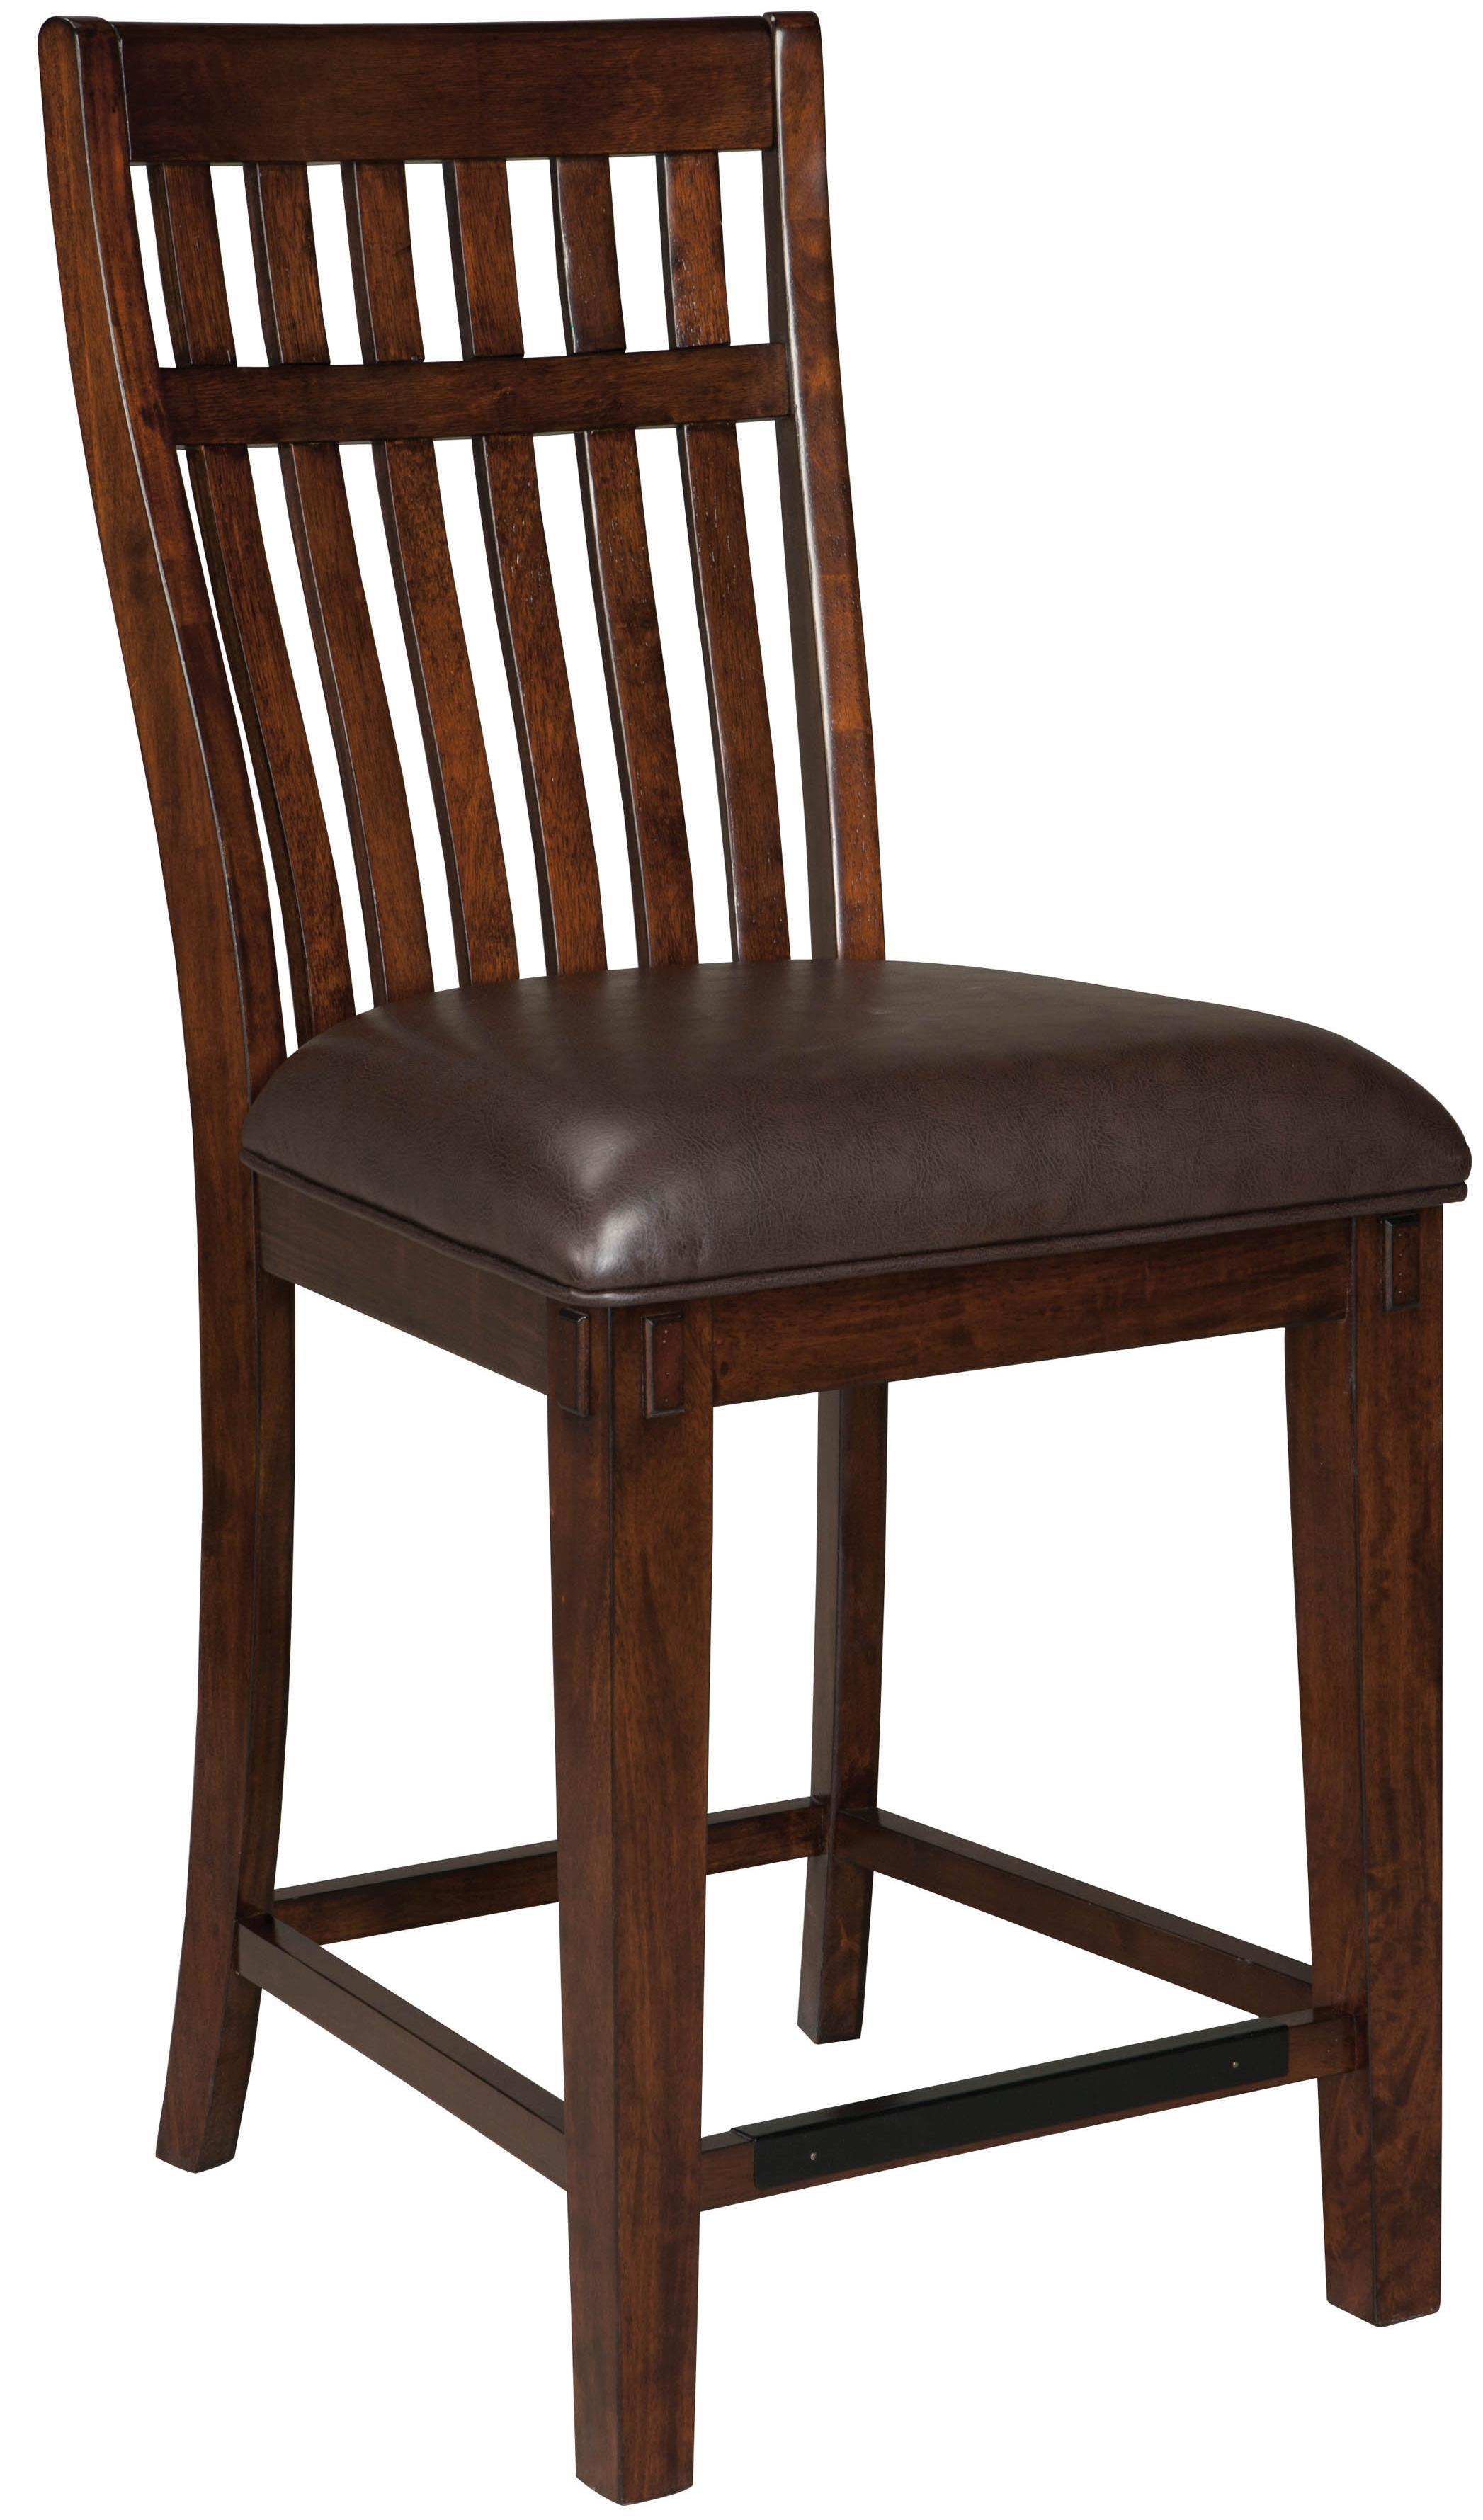 upholstered counter chairs dining metal legs uk standard furniture artisan loft 13634 stool with 24 seat height coconis mattress 1st bar stools